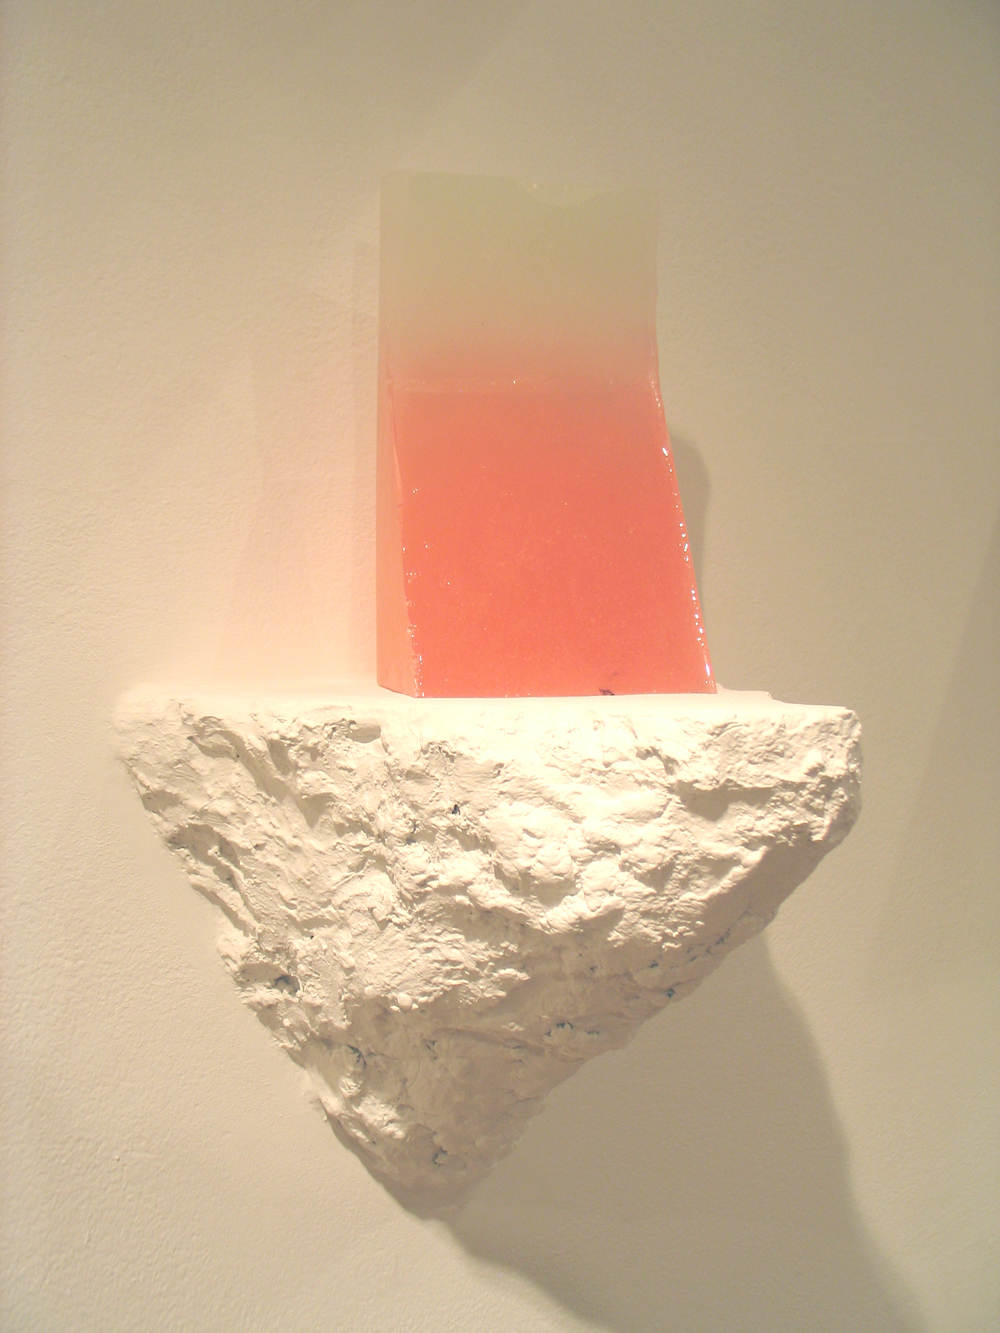 Jesse A. Greenberg  Pink Pill Cliff   2012 Plastic, pigment and plaster 14 x 11 x 8 ½ in/ 35.6 x 27.9 x 21.6 cm